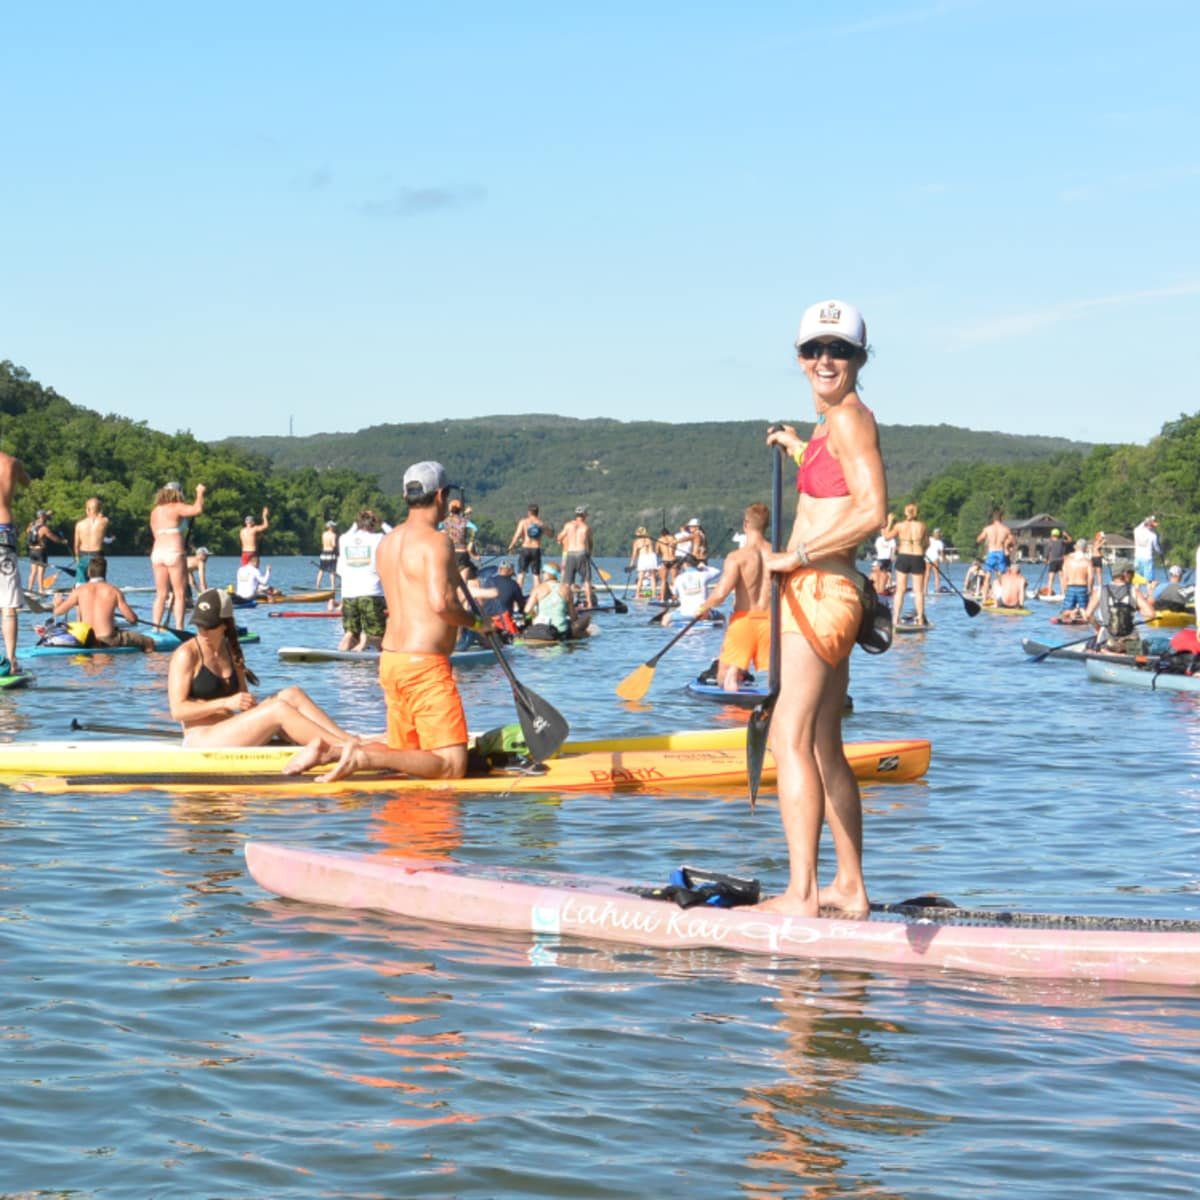 Tyler's Dam That Cancer_Flatwater Foundation_stand up paddle boarding_Lake Austin_Cindy Present_2015